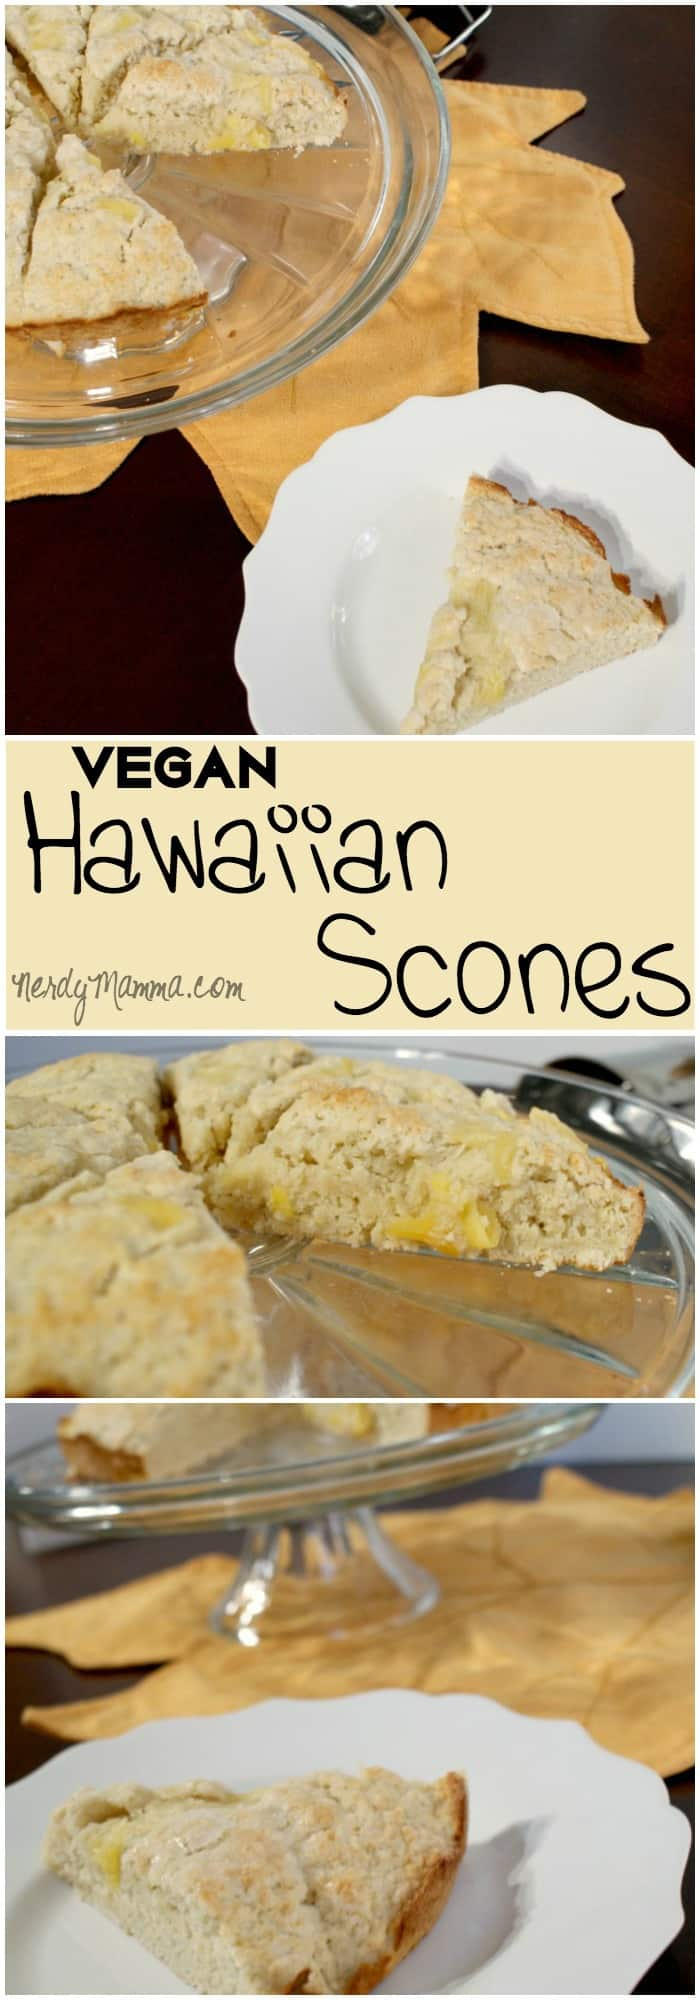 I loved these easy egg free and dairy free pineapple and coconut scones. They were so delicious. Yum!